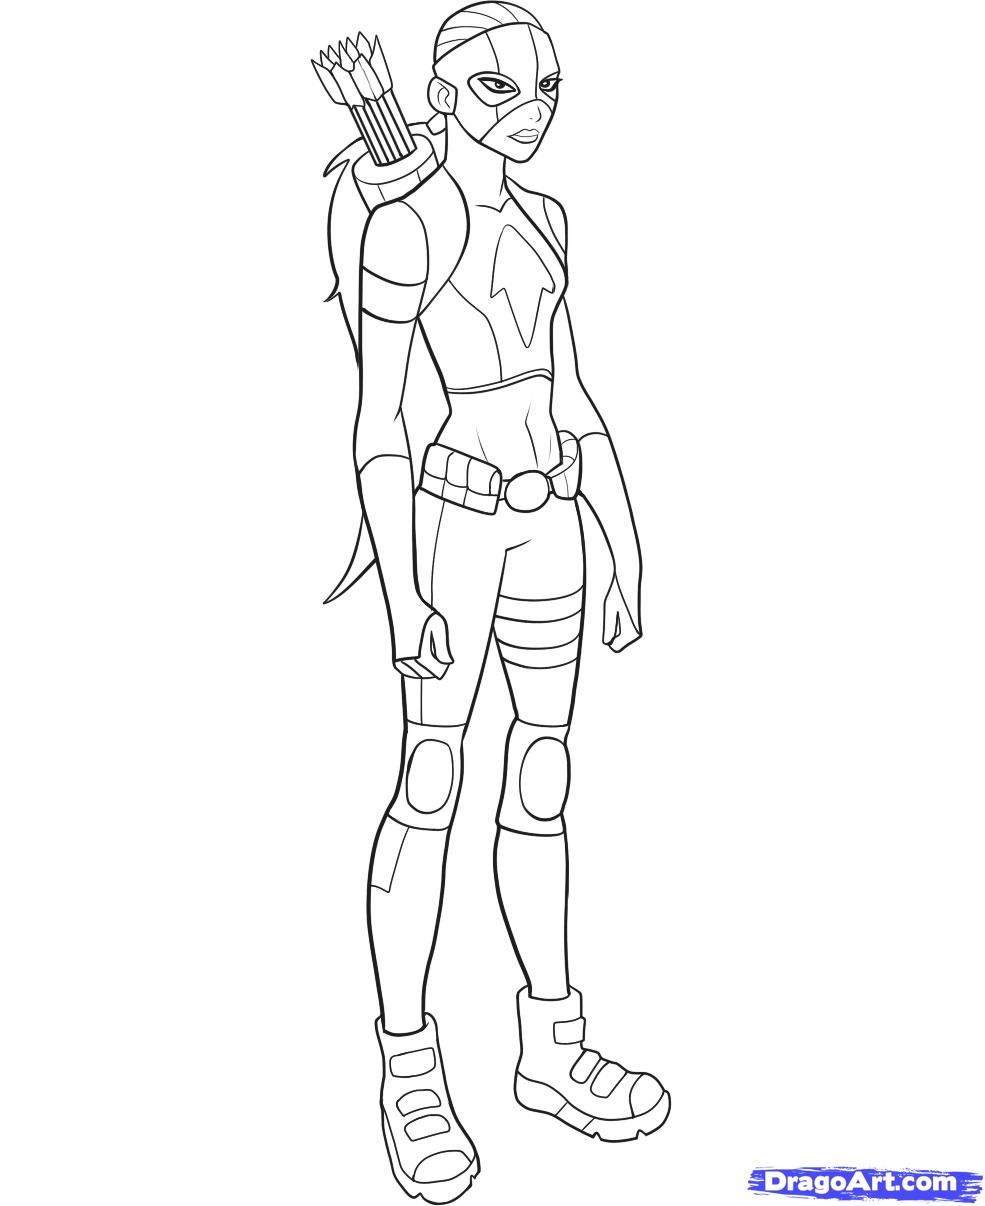 Nightwing From DC Comics Young Justice Coloring Page | Nightwing ... | 1206x985